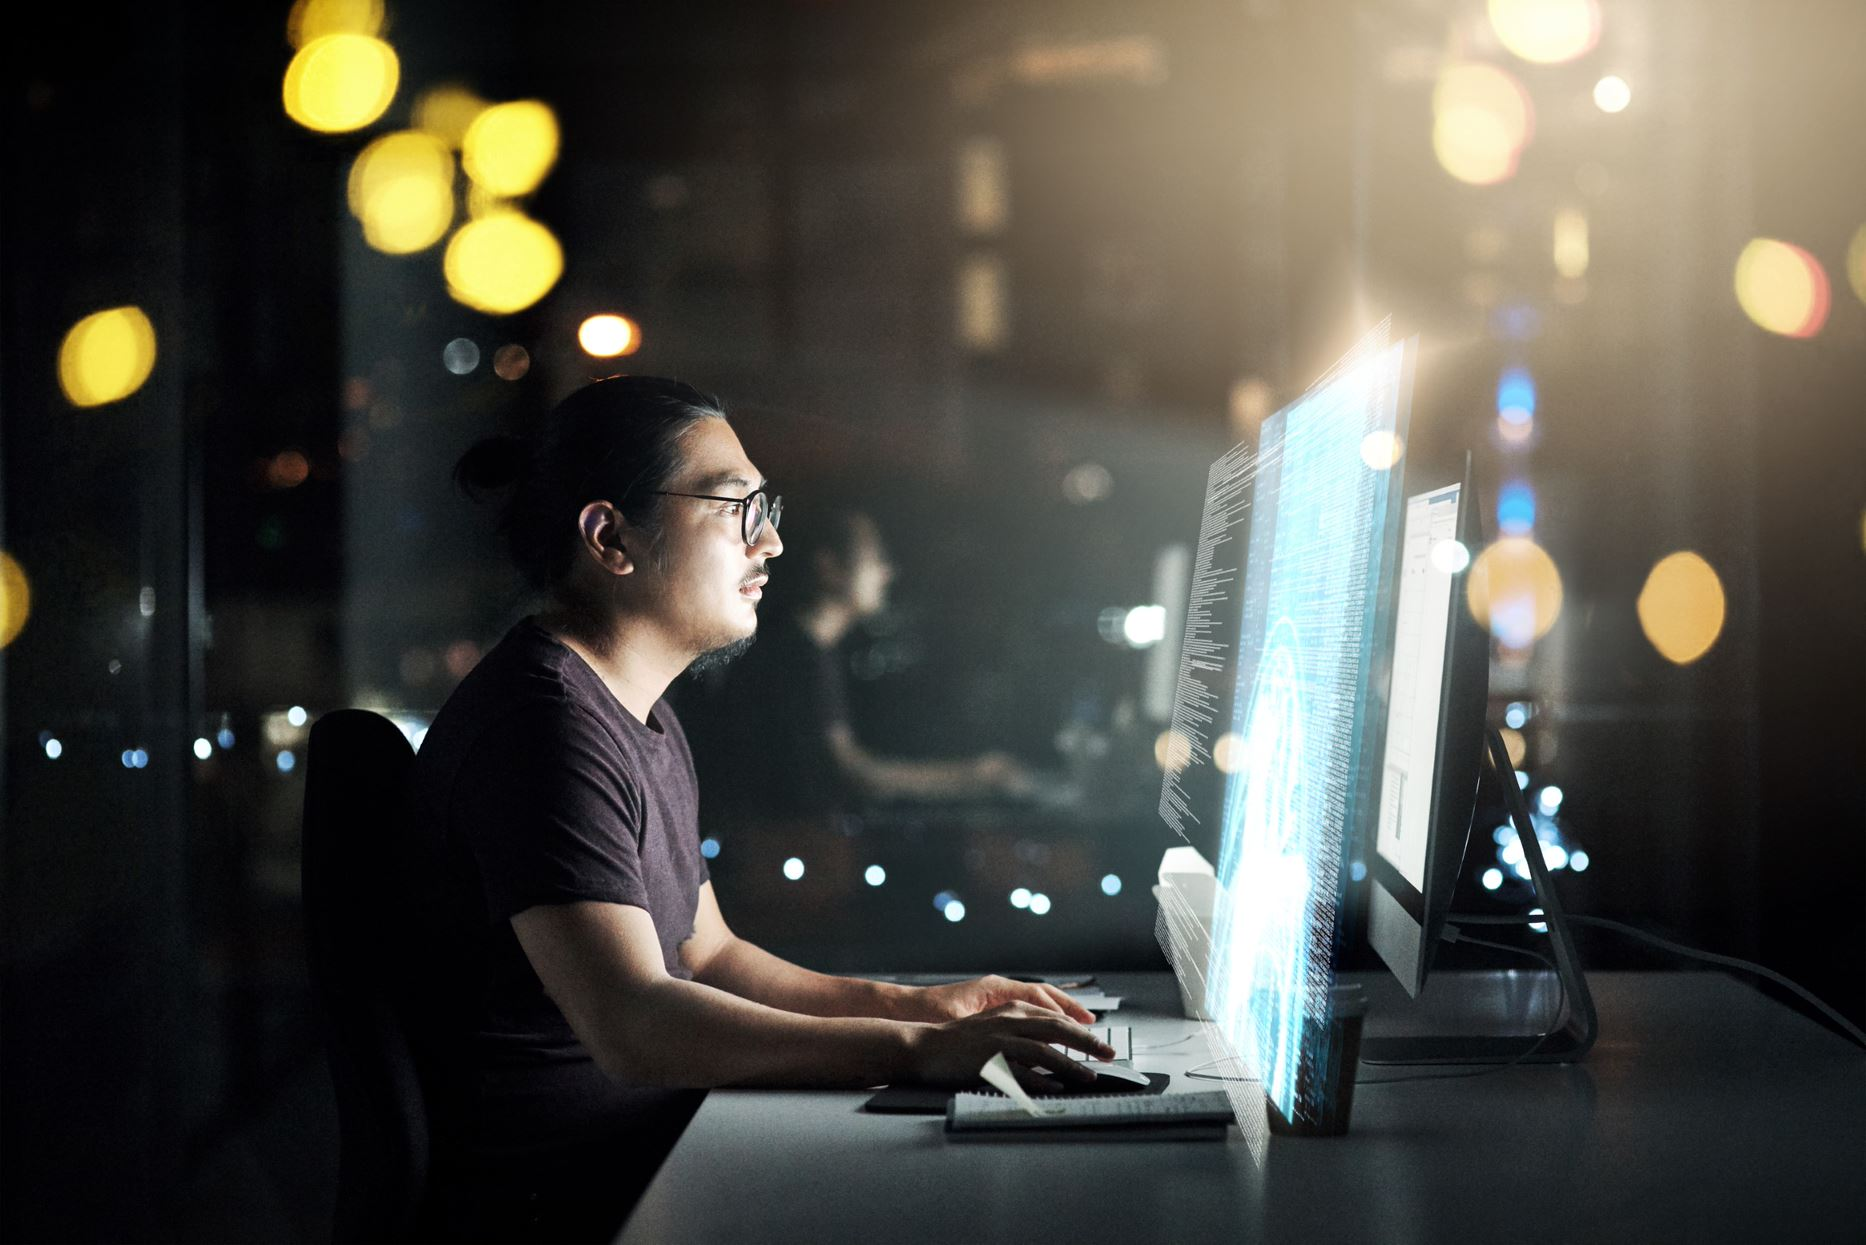 person working on the computer at night